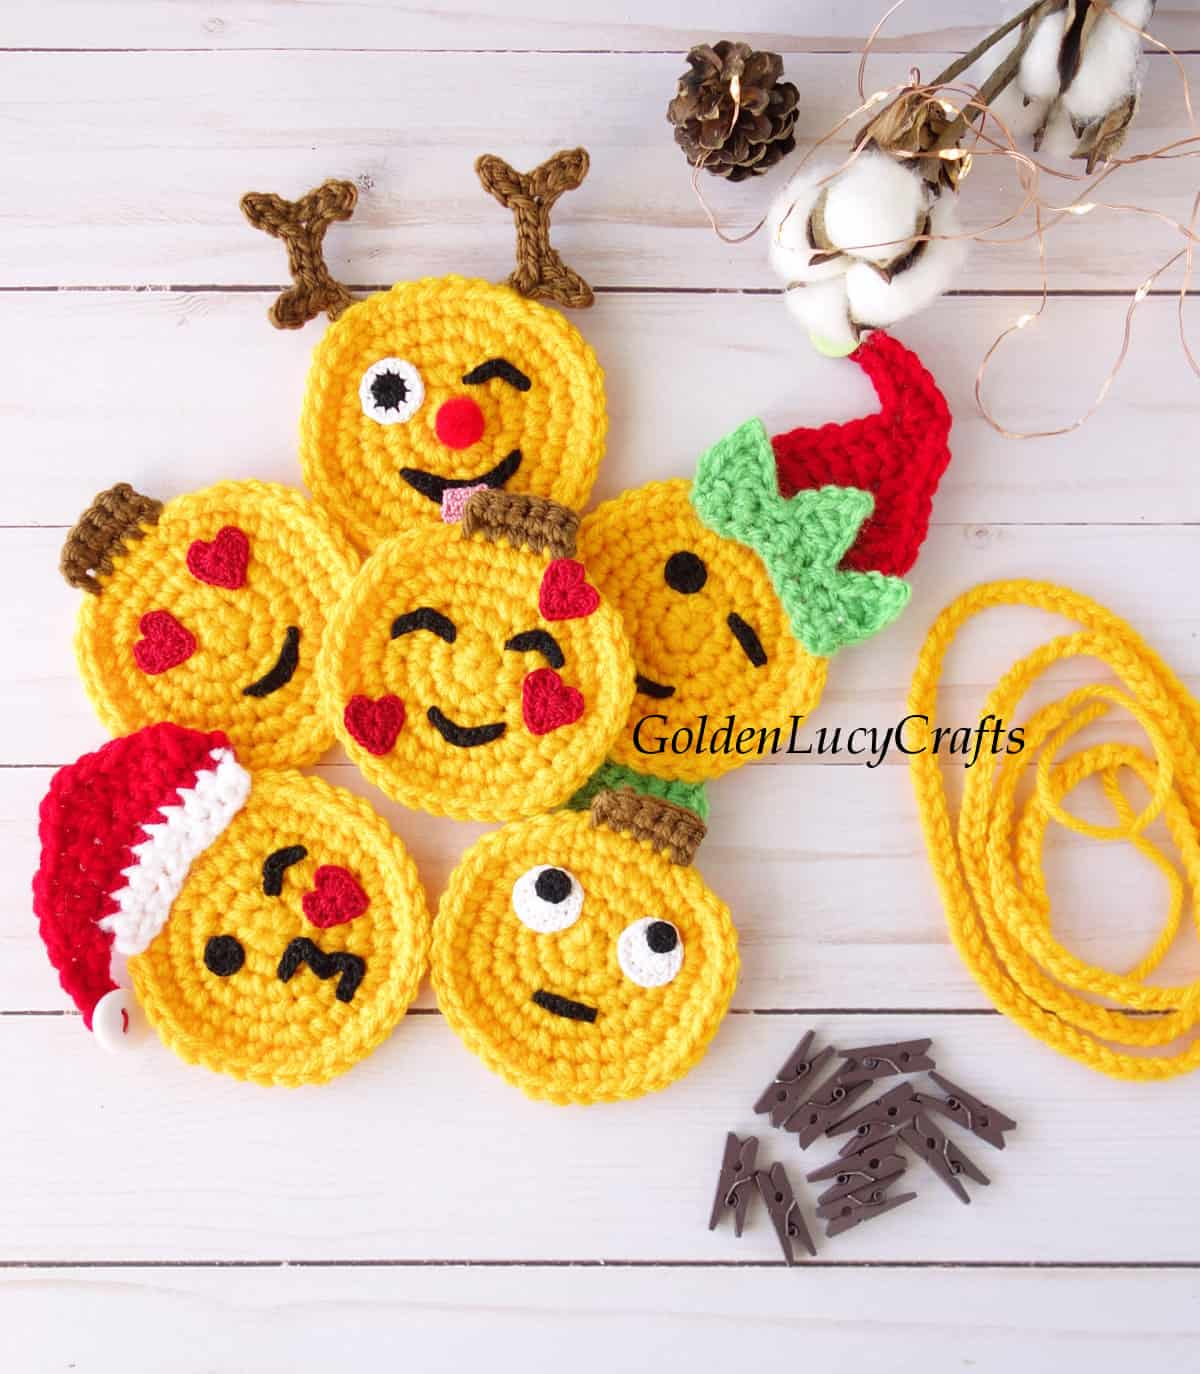 Crocheted emoji appliques, craft clothespins, crocheted string.